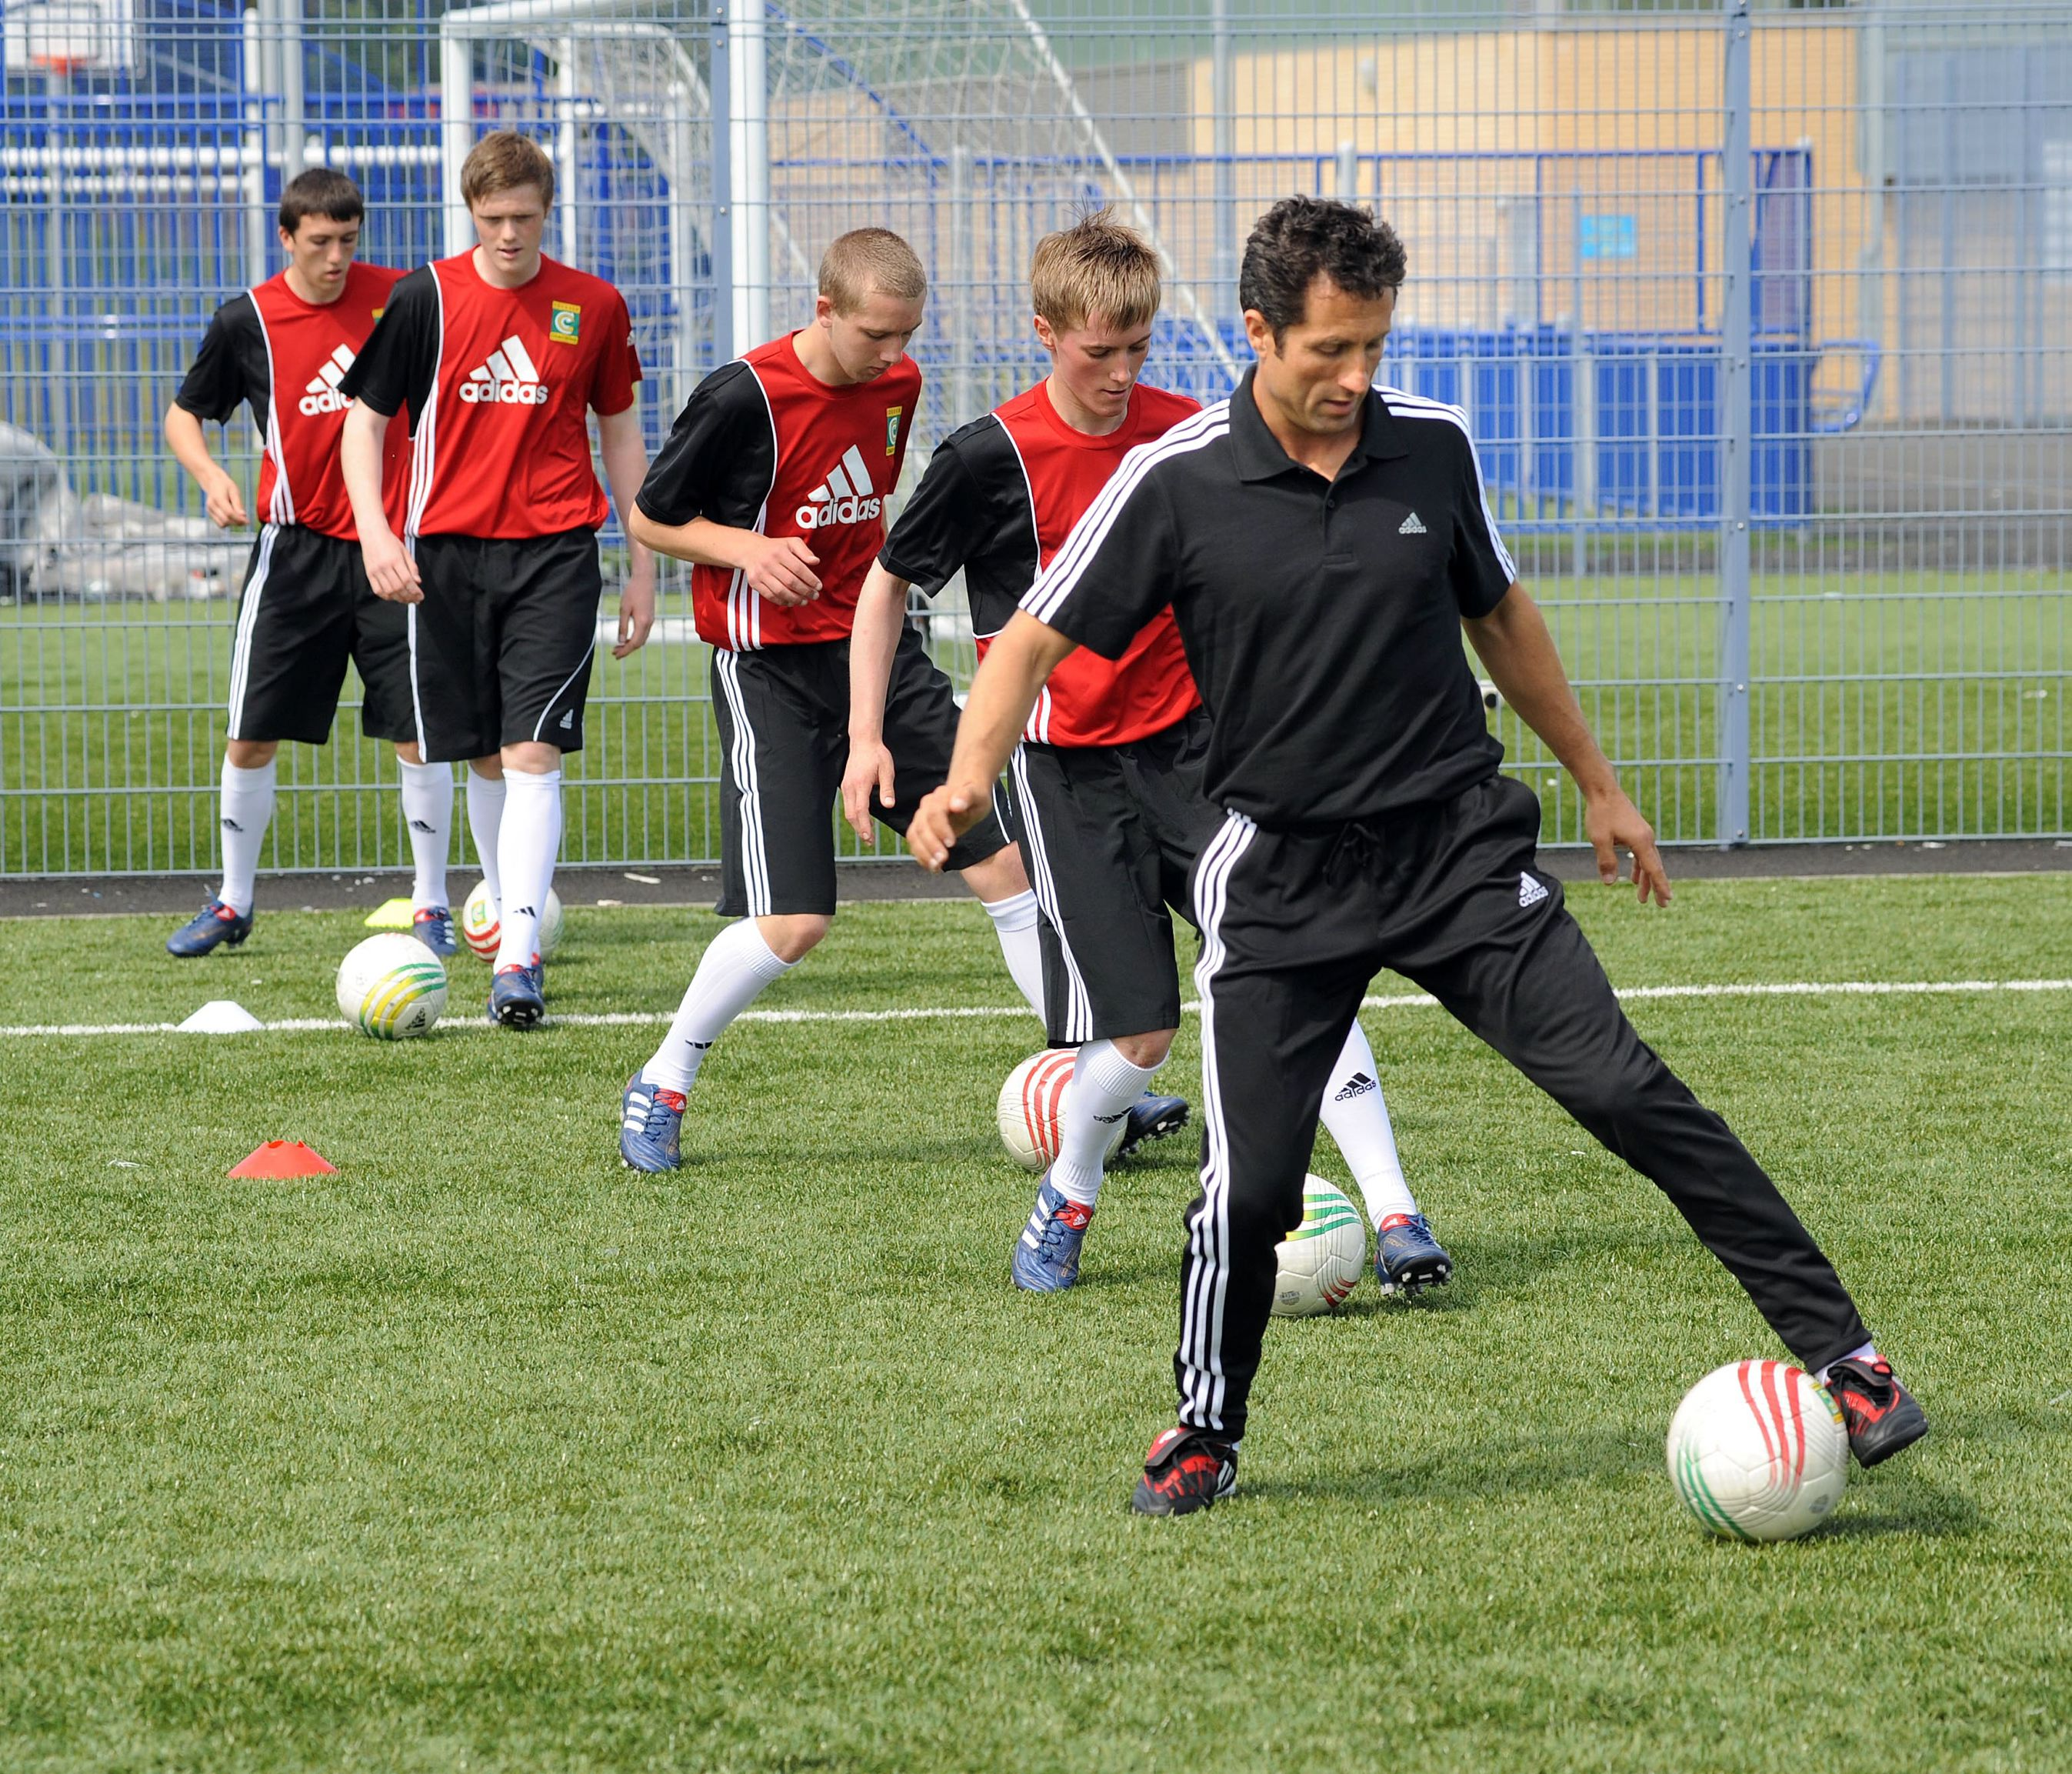 Children S Youth Sports: John Collins To Attend Scottish Launch Of Coerver Coaching